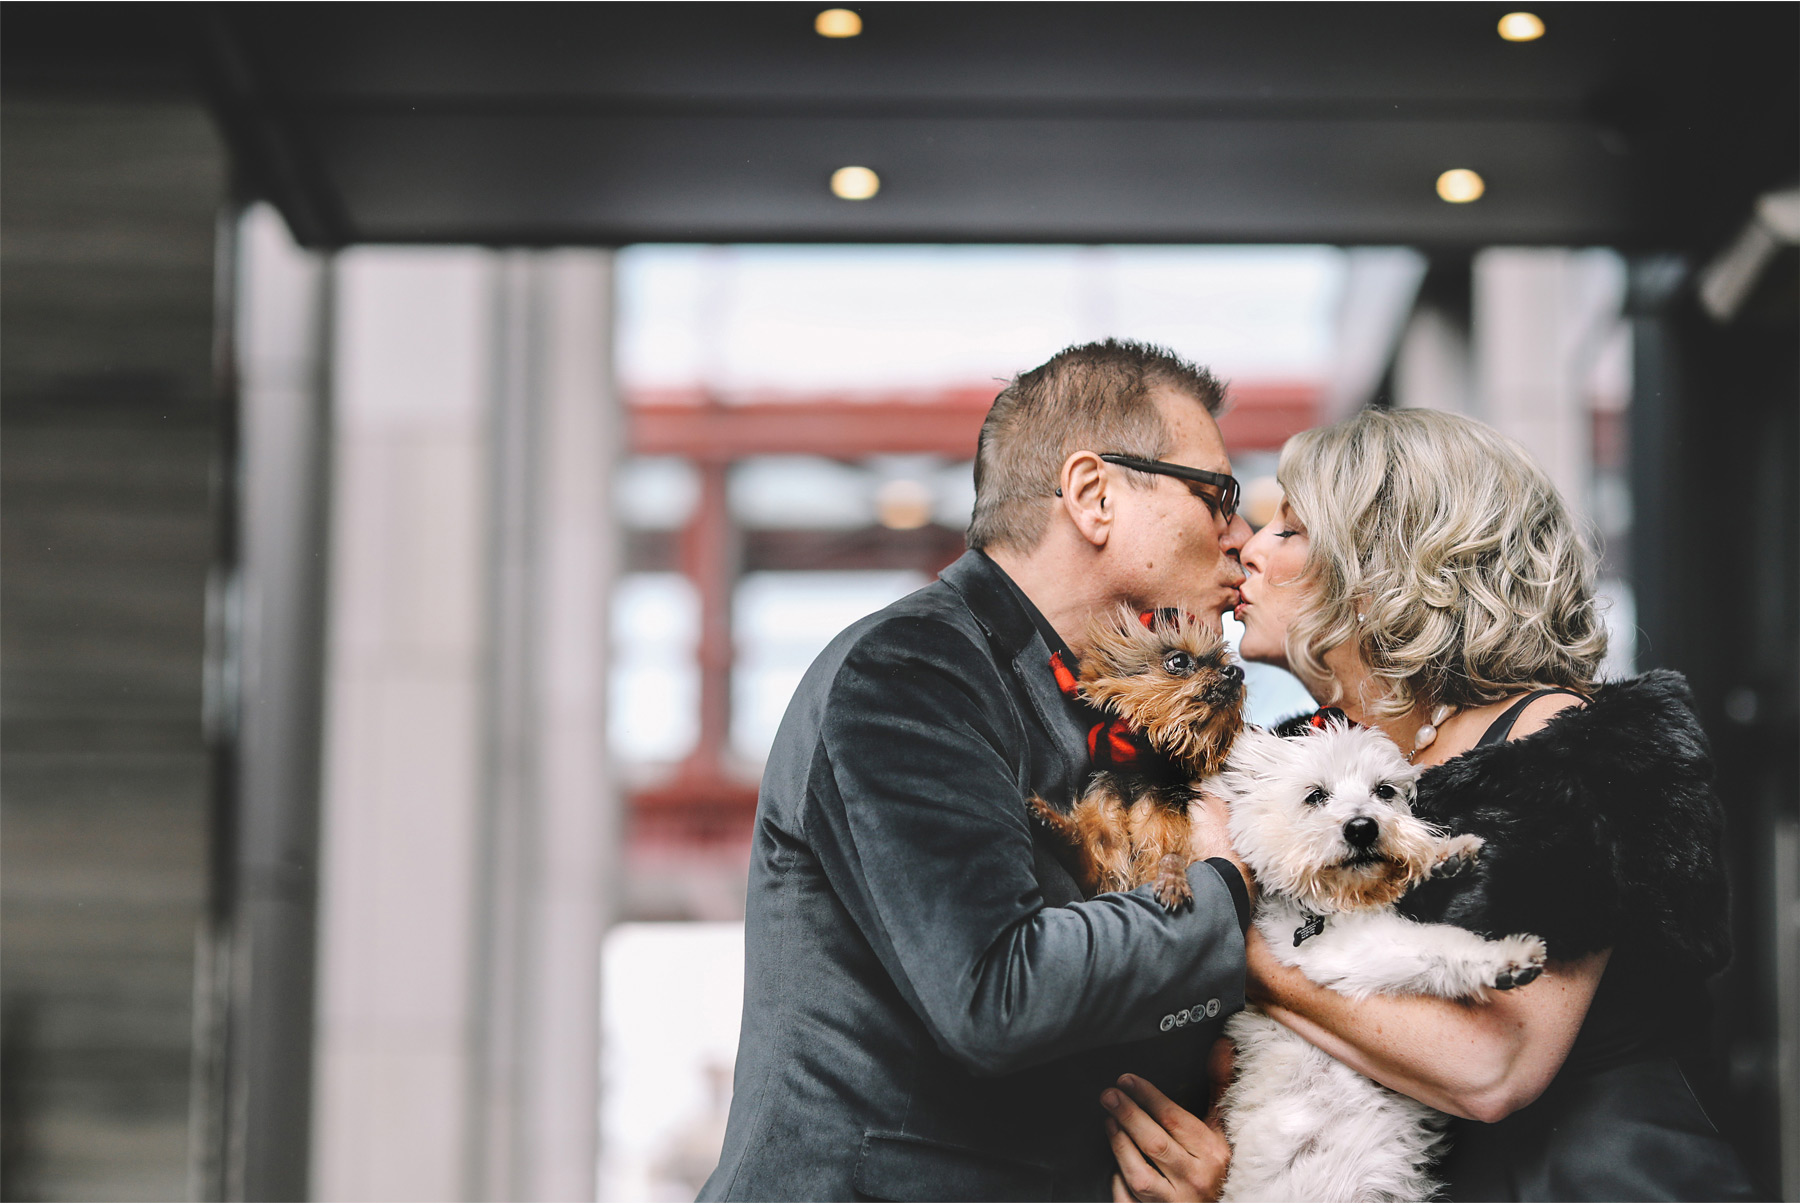 05-Minneapolis-Minnesota-Wedding-Photography-by-Vick-Photography-Downtown-Loews-Hotel-Bride-and-Groom-with-Dogs-Joan-and-Tim.jpg